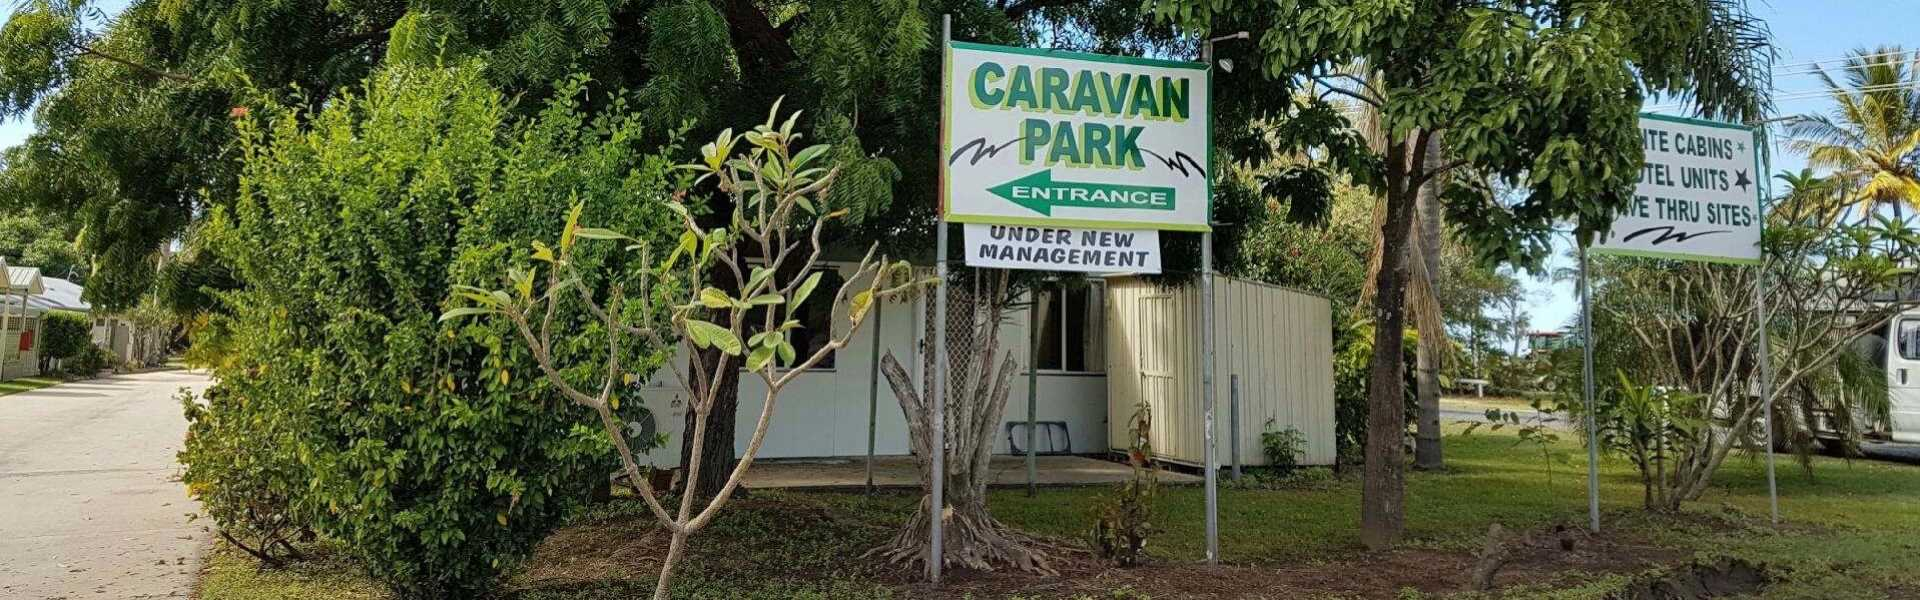 Kui Parks, Carmila Caravan Park and Cabins, Entrance